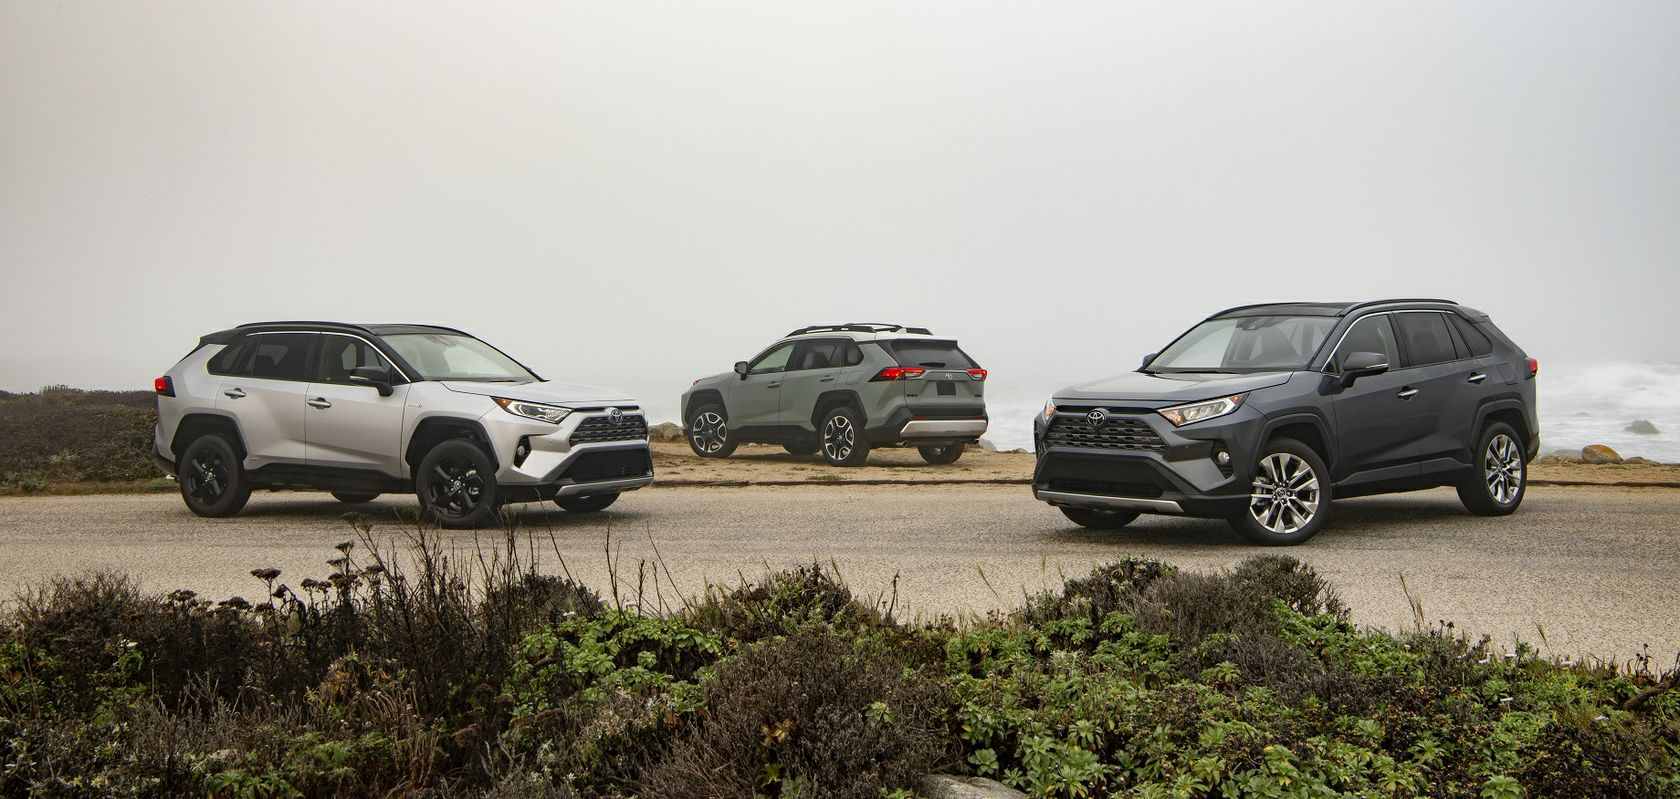 hight resolution of all new 2019 toyota rav4 breaks the mold for the segment it created